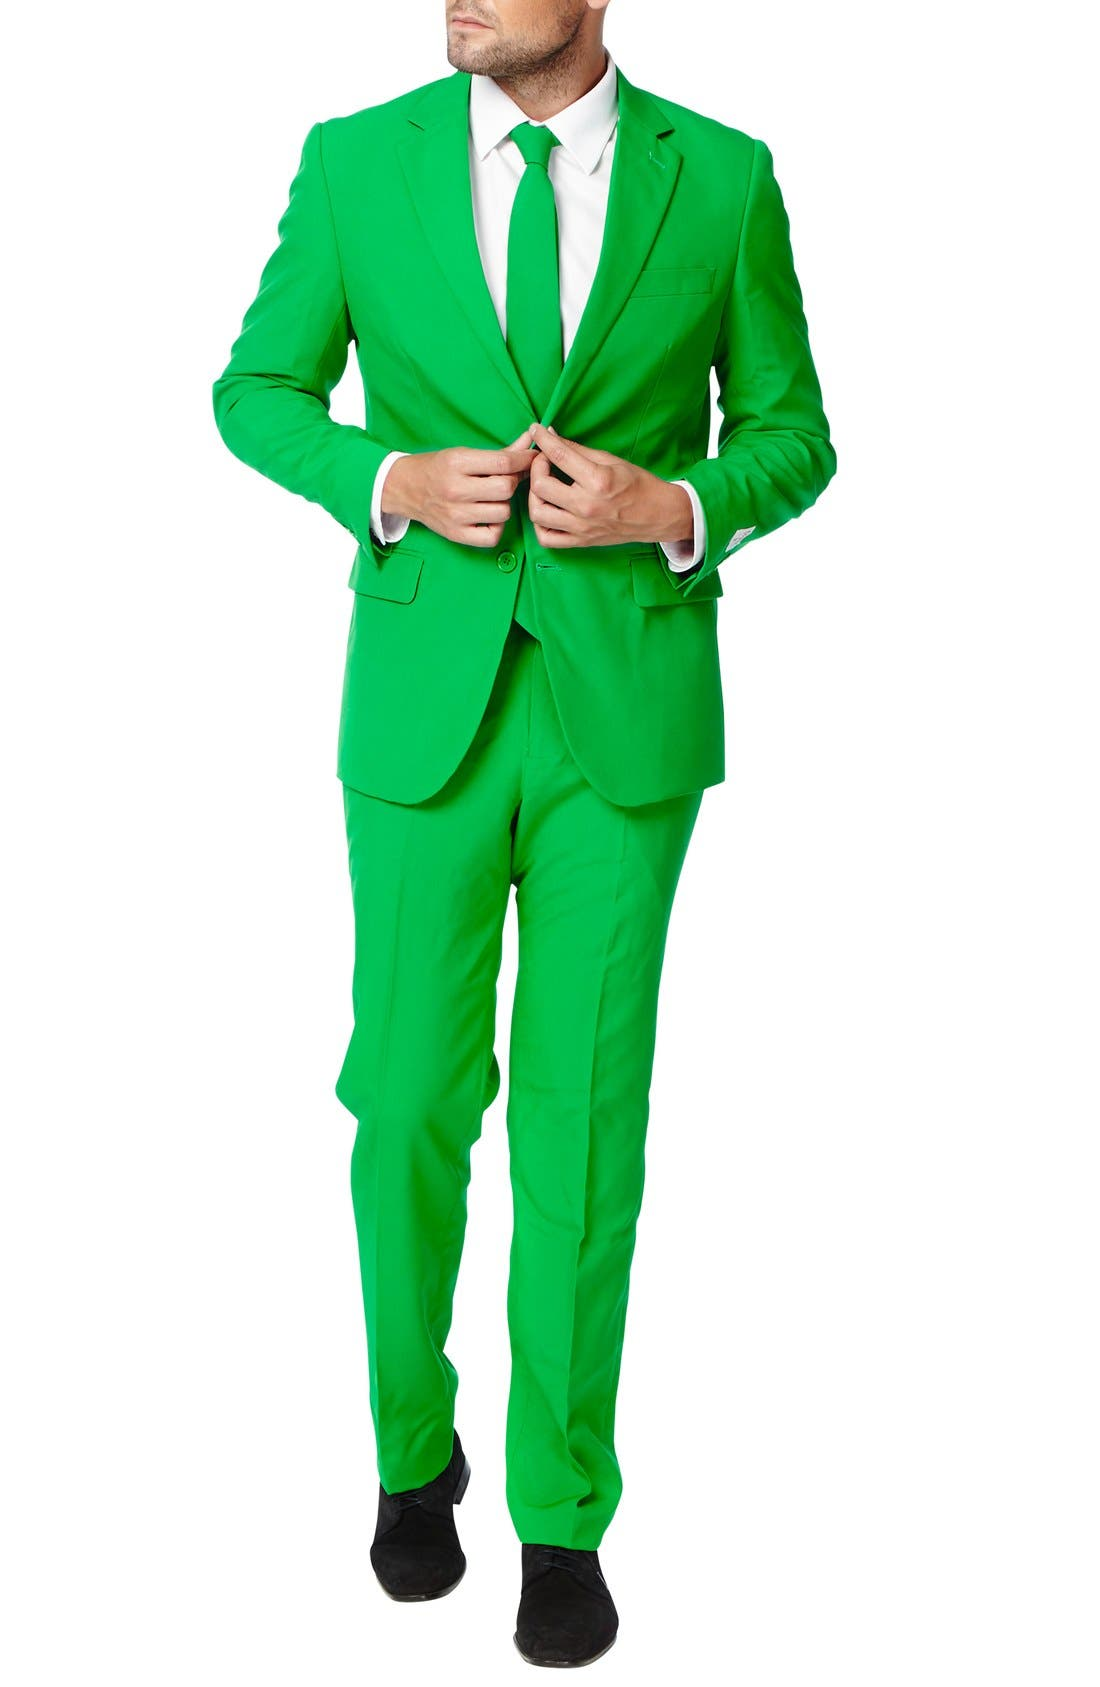 'Evergreen' Trim Fit Suit with Tie,                             Alternate thumbnail 4, color,                             300